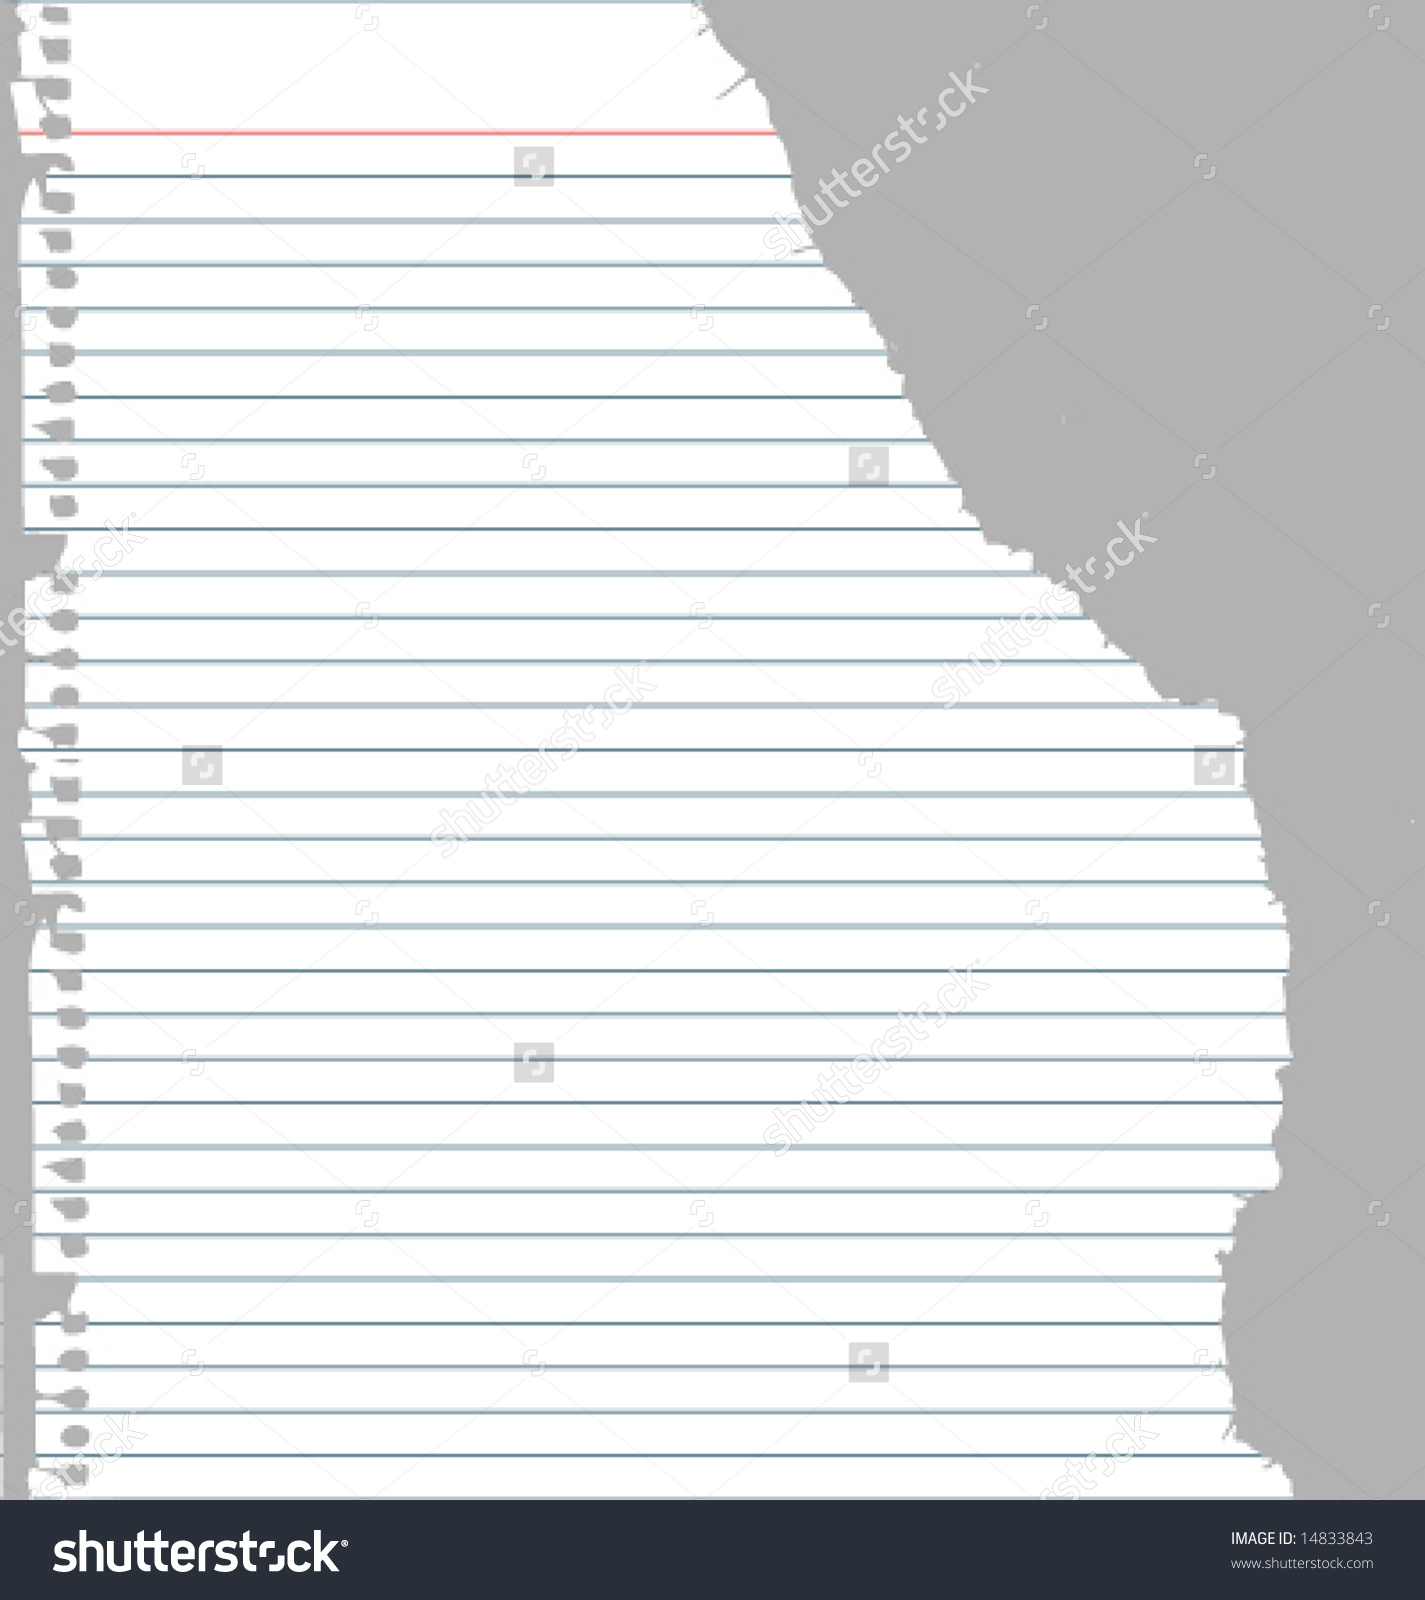 Ripped Notebook Paper Stock Vector Illustration 14833843.